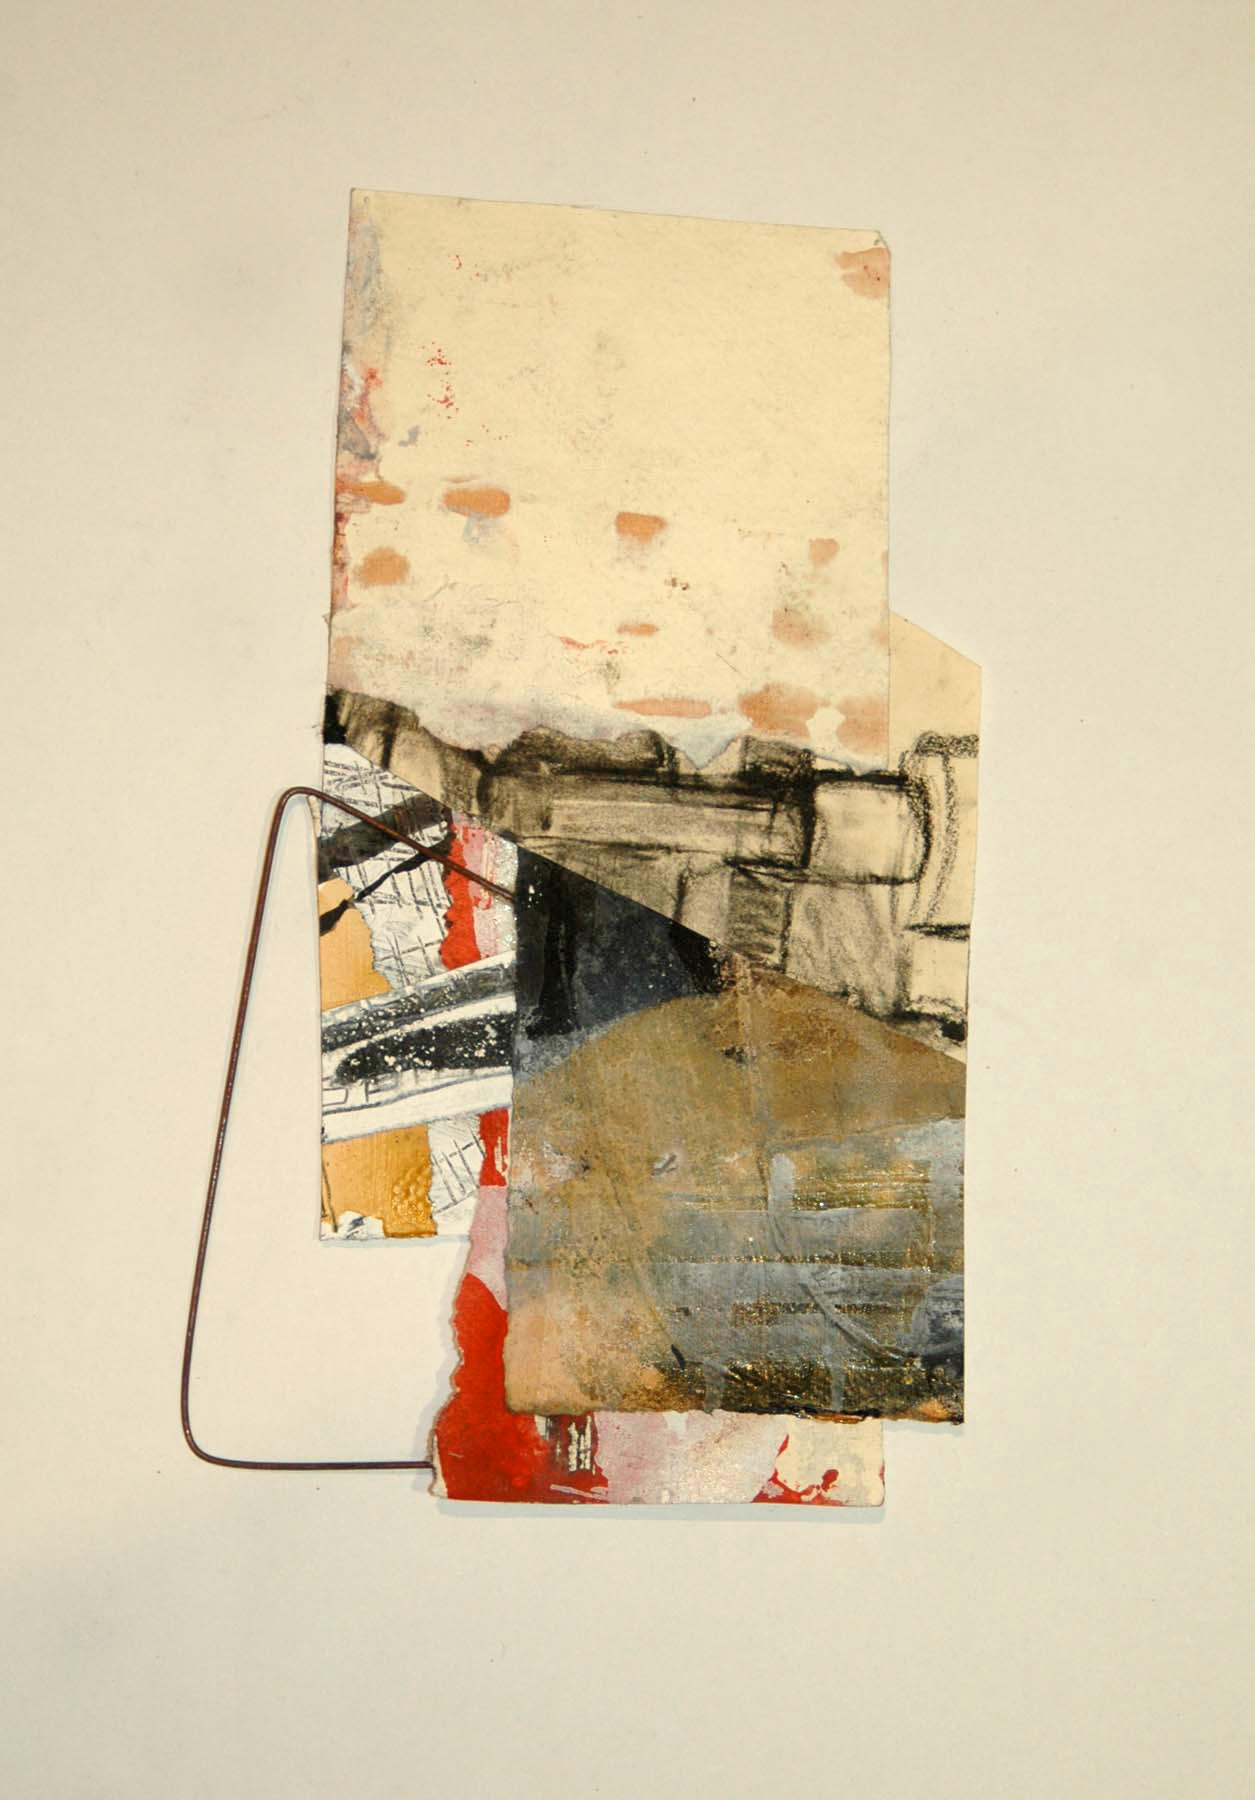 Ladders Collage IV by KateStehr